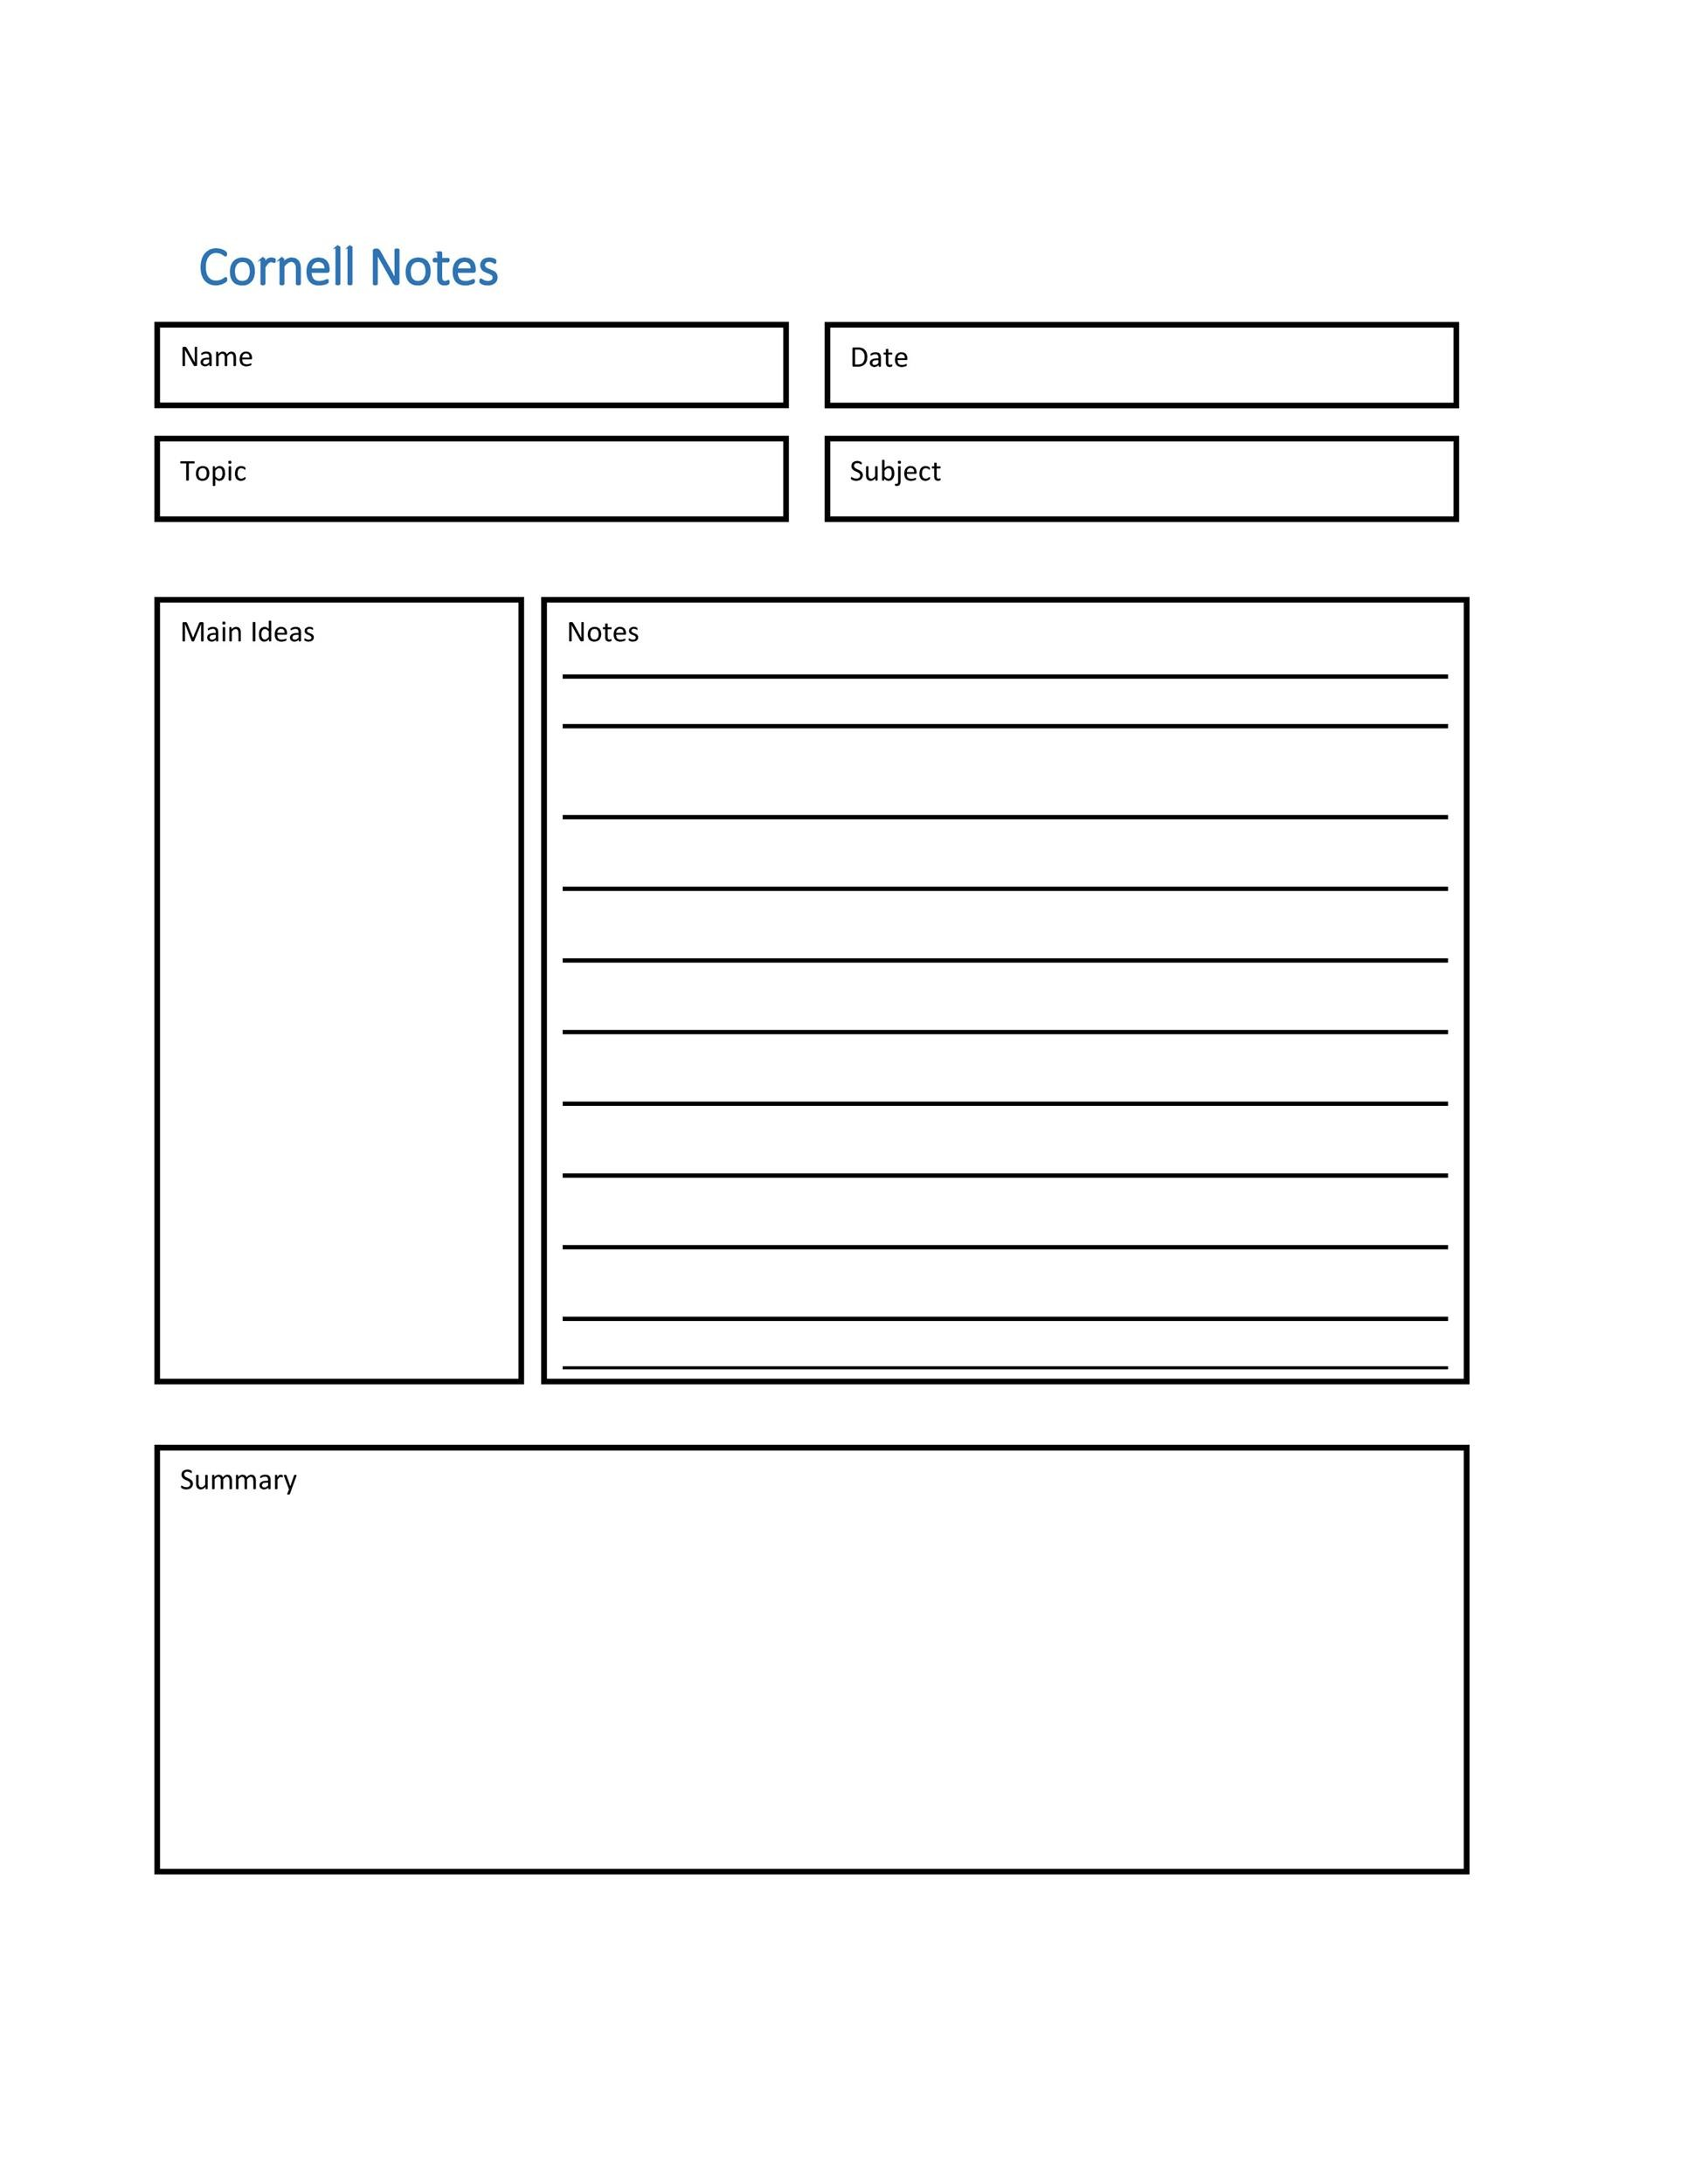 Free Cornell Notes Template 05